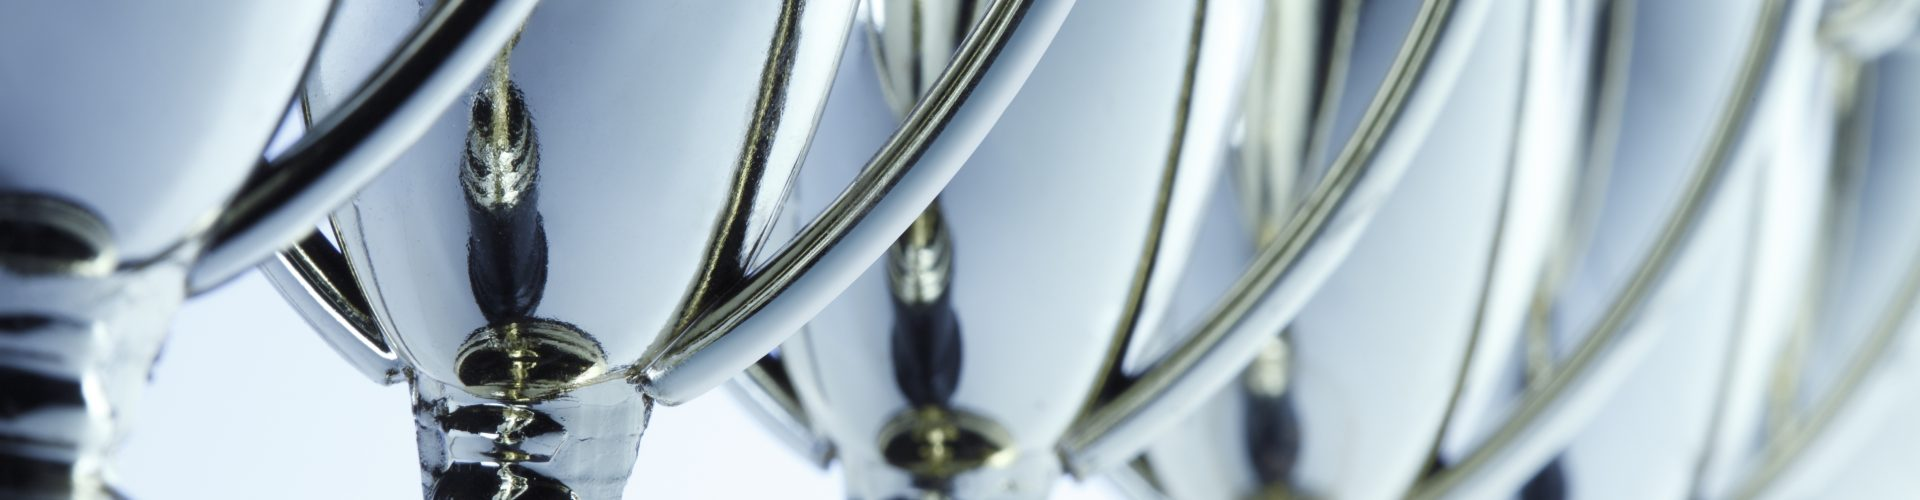 Close-up of a long row of trophies. Shot with shallow depth of field.